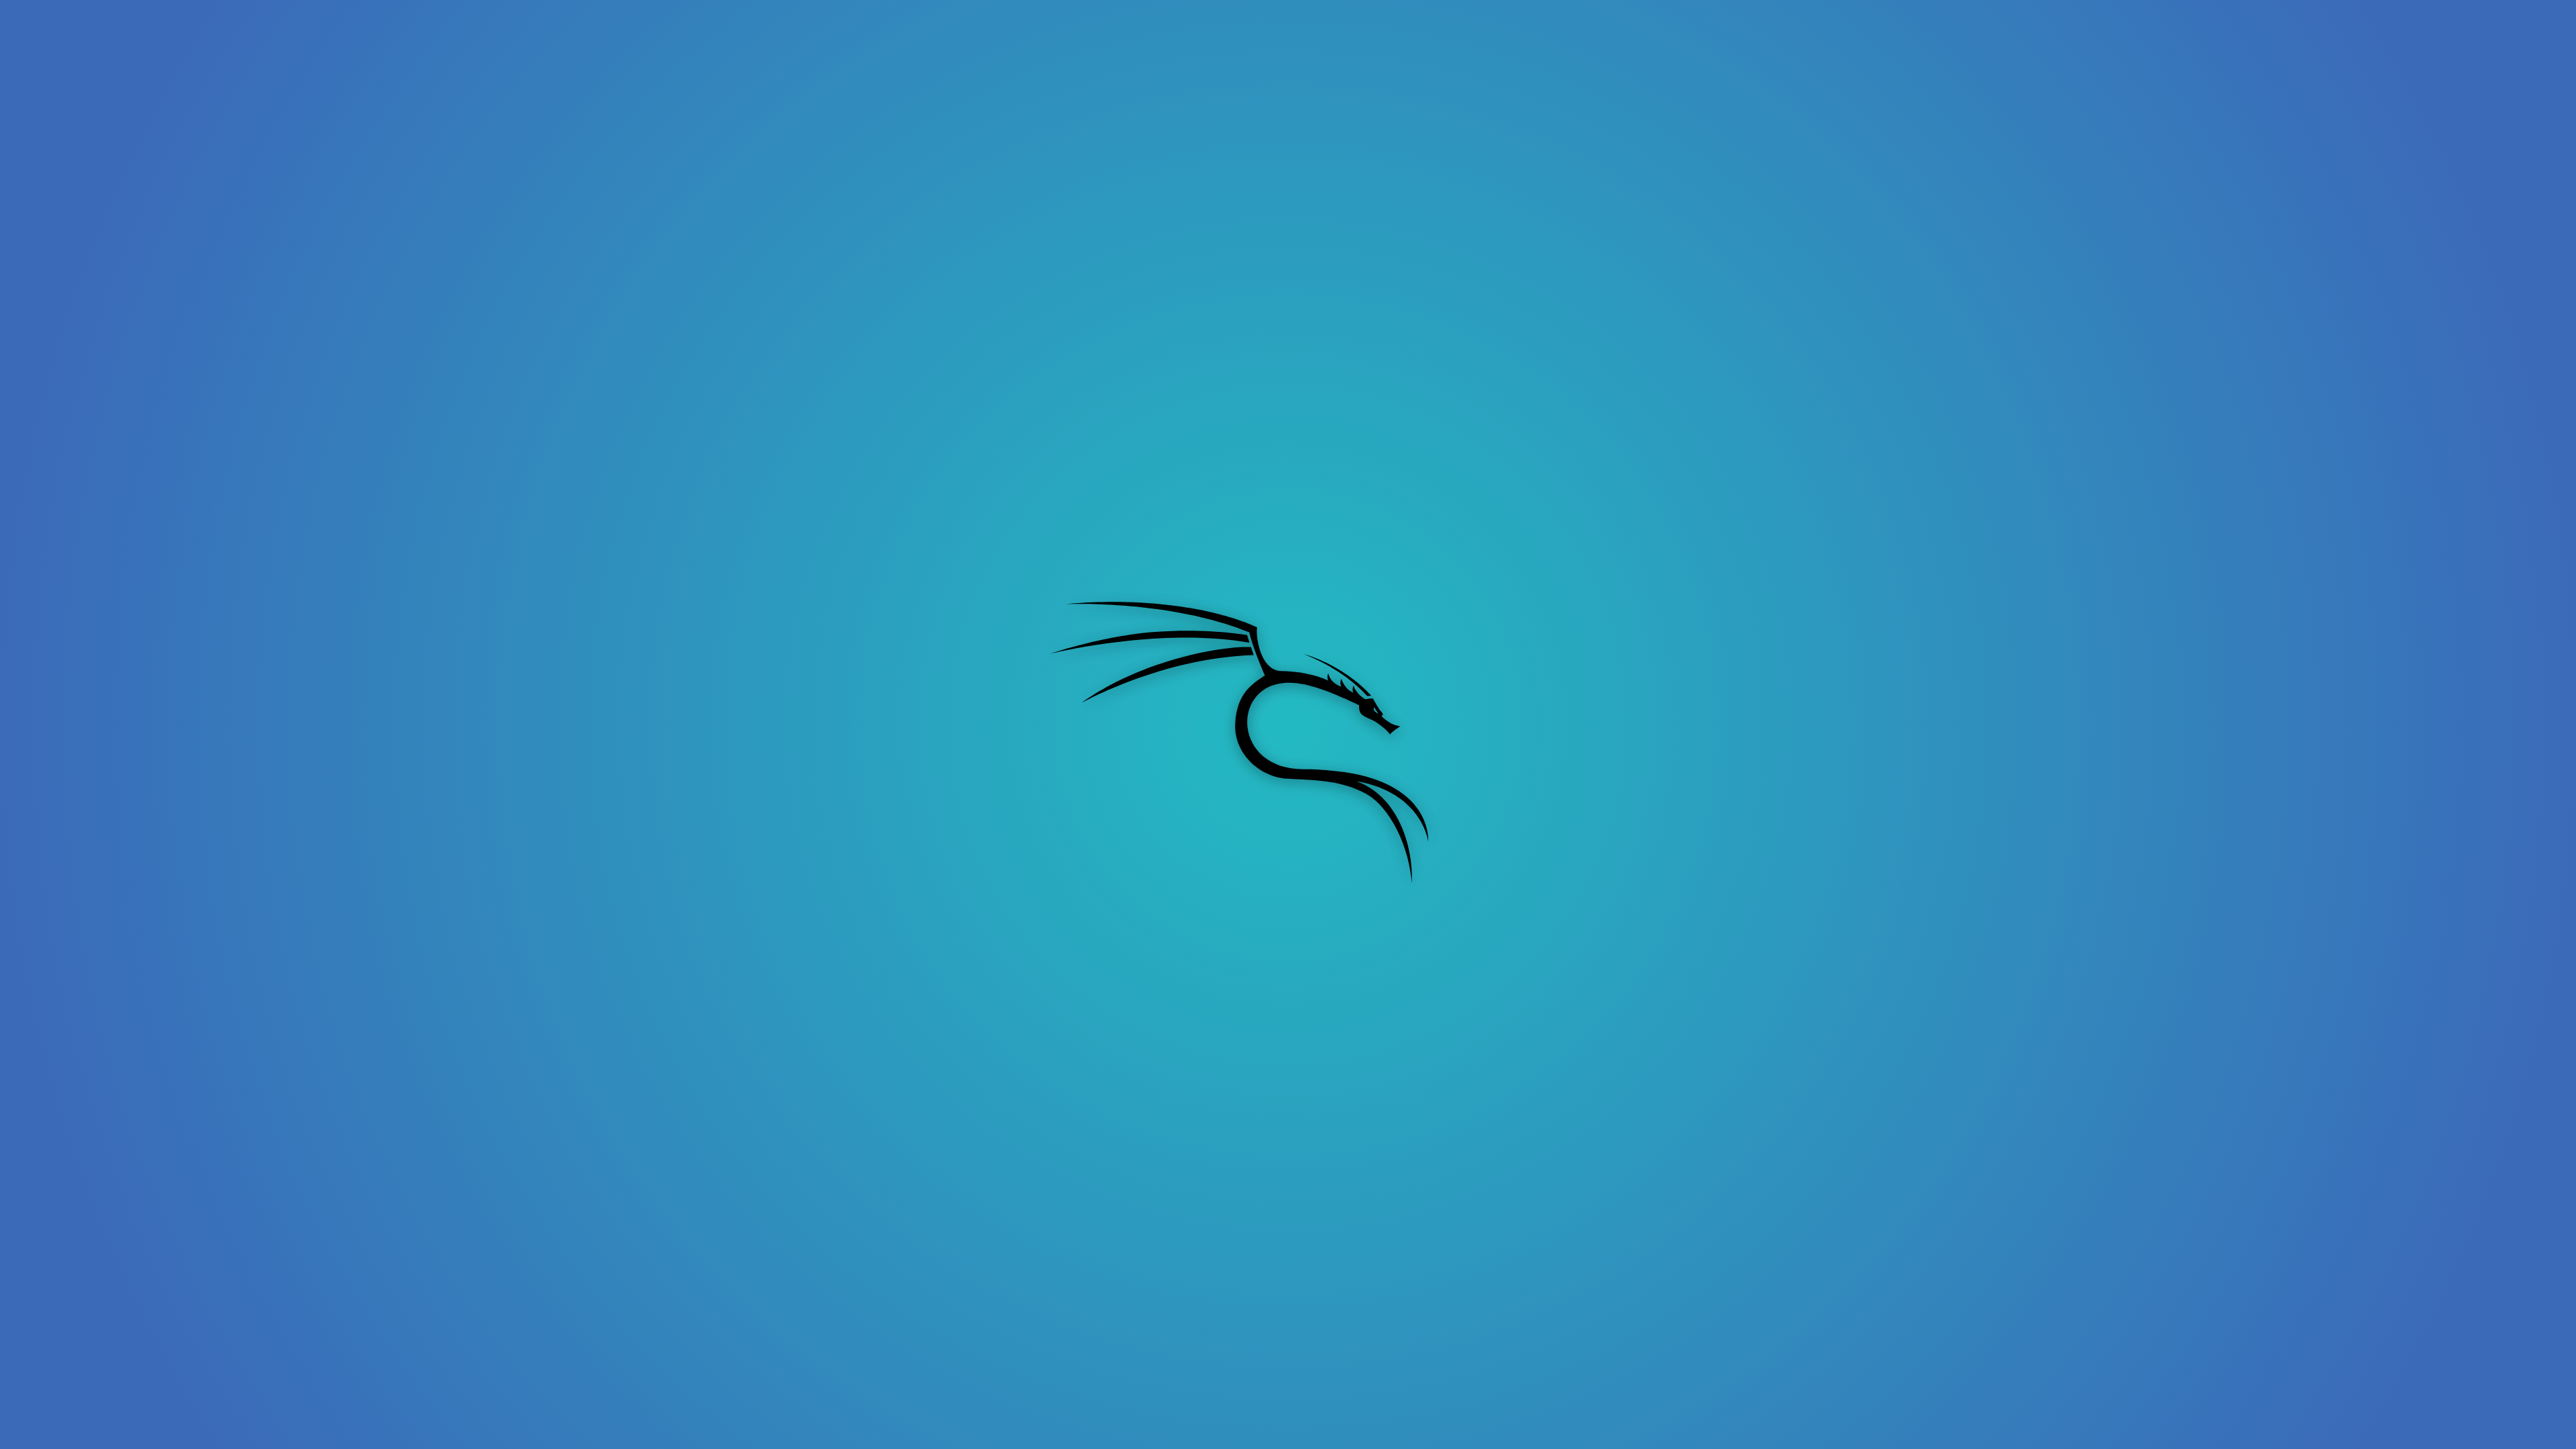 kali linux tatto wallpaper 4k png desktop 2020.2